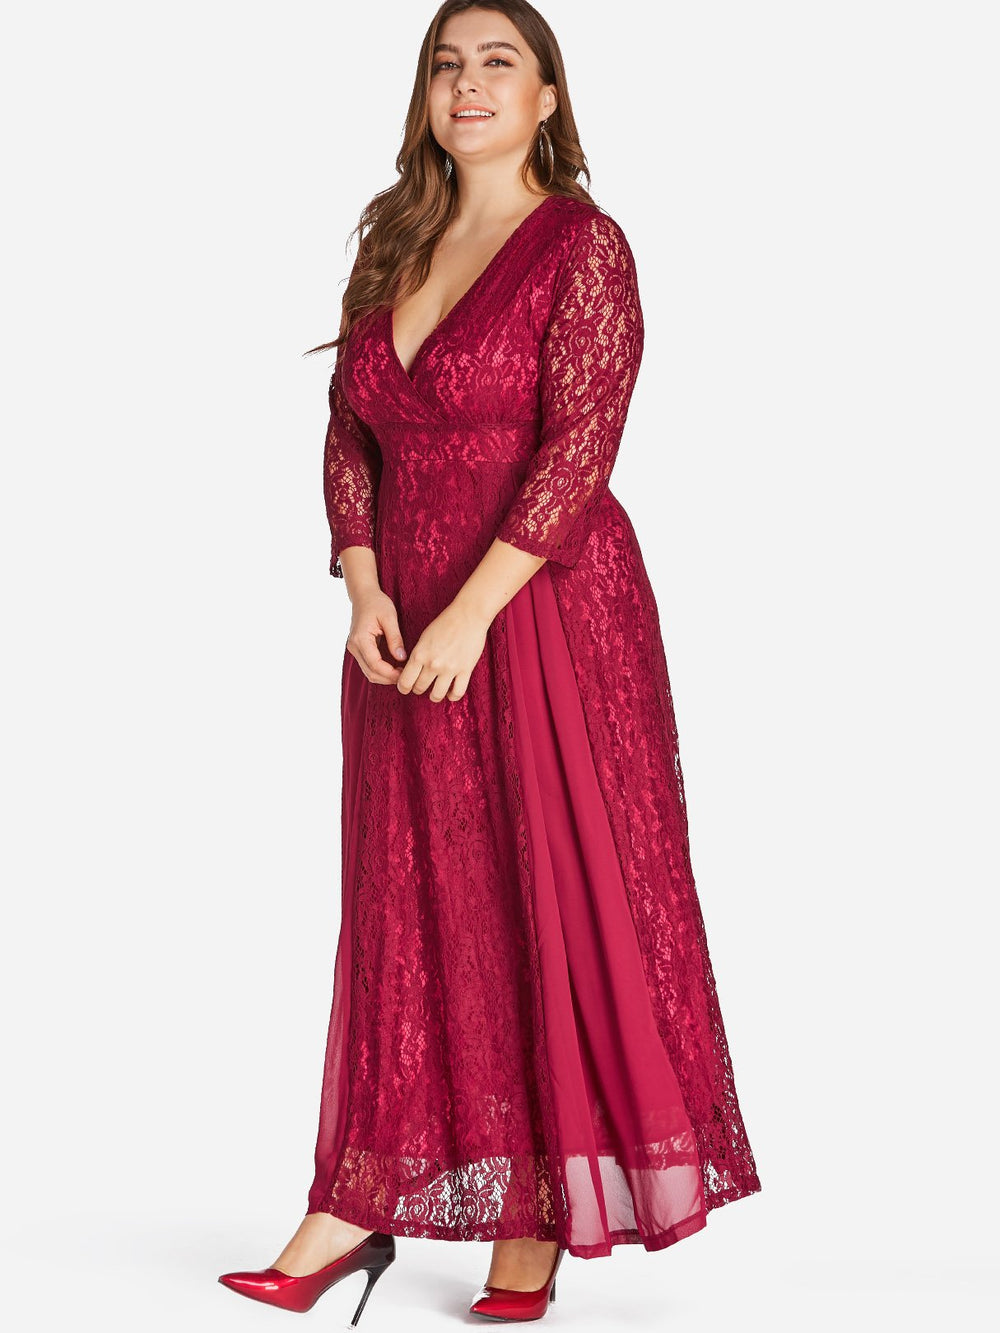 Cool Plus Size Dresses